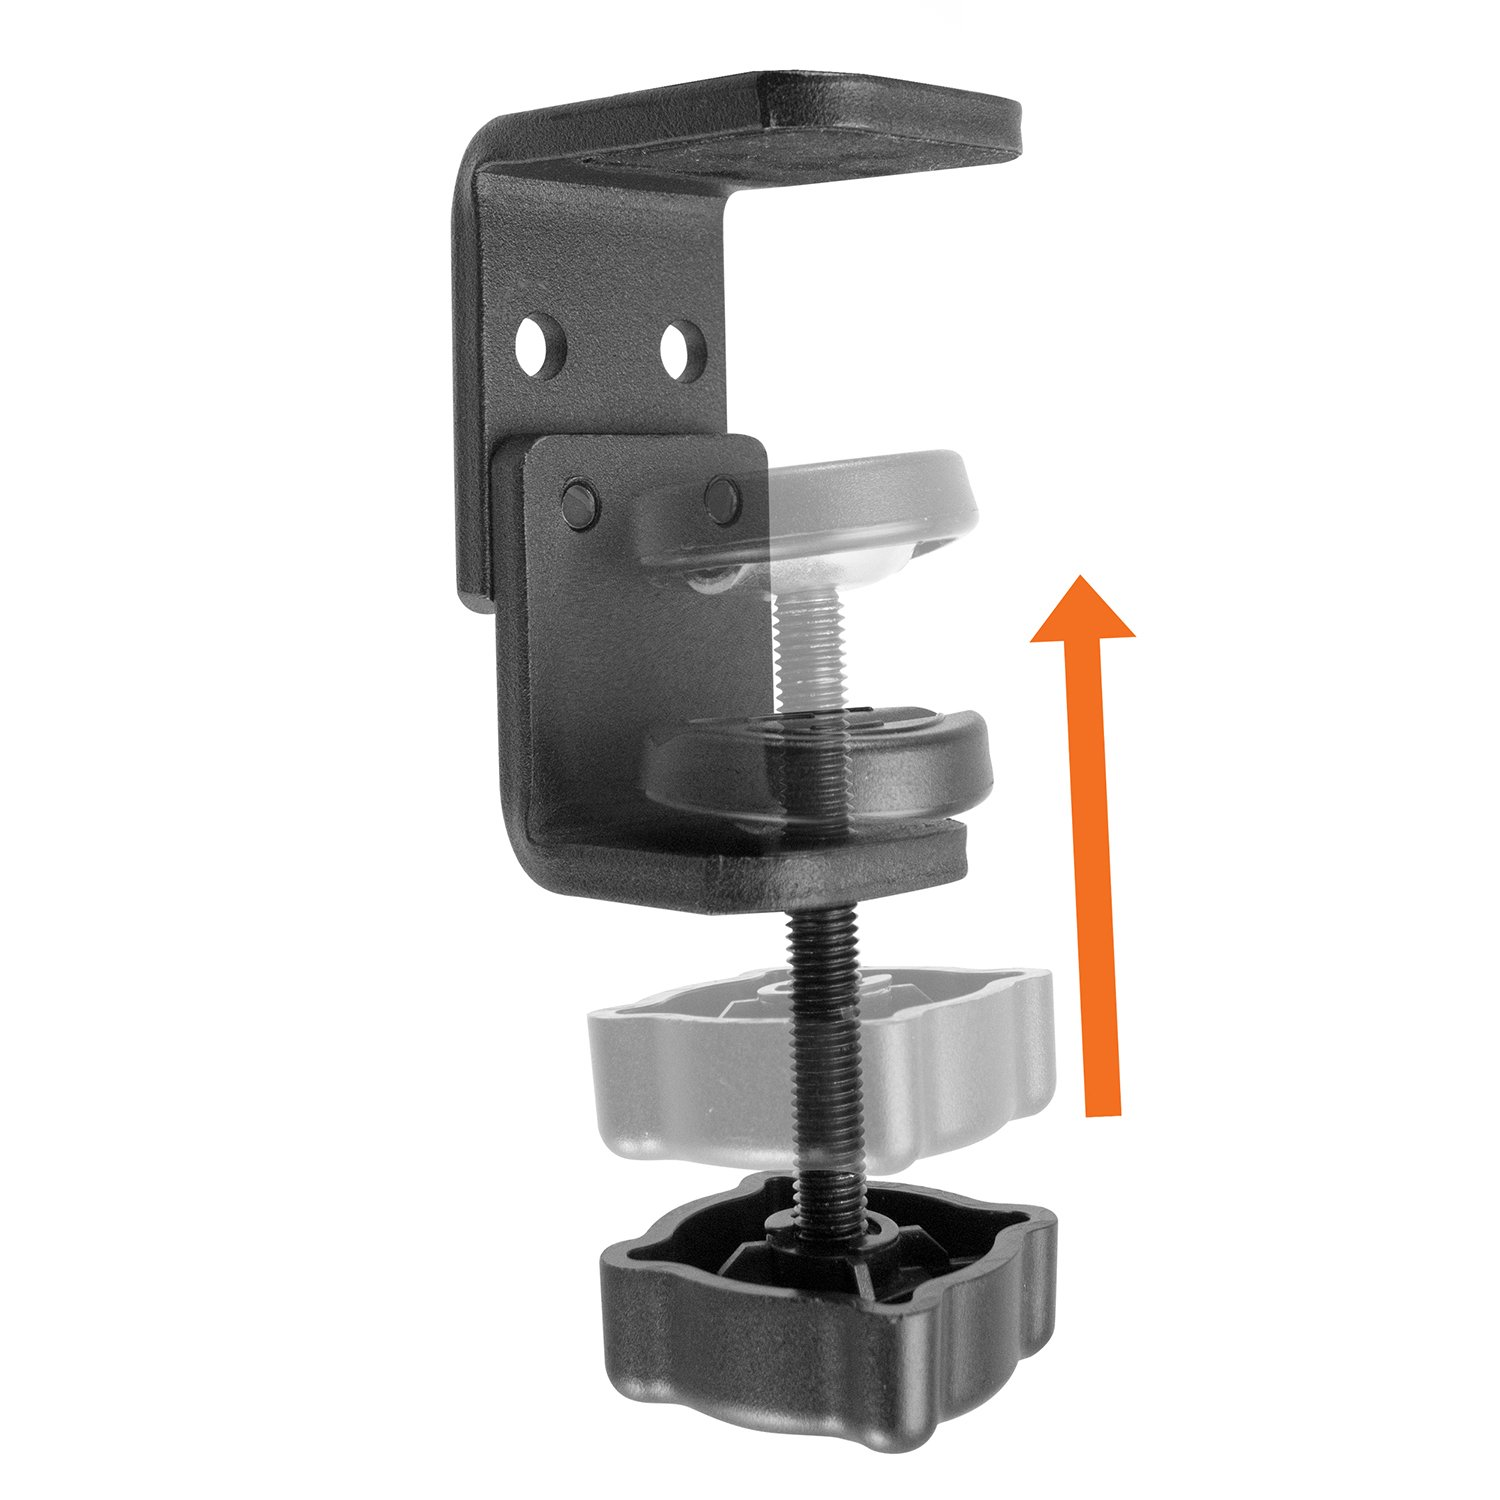 iBOLT TabDock Bizmount Clamp- Heavy Duty Dual-Ball C-Clamp mount for all 7'' - 10'' tablets (iPad, Samsung Galaxy Tab, etc.) For Desks, Tables, Wheelchairs, Carts: Great For Homes, Schools, Offices by iBOLT (Image #7)